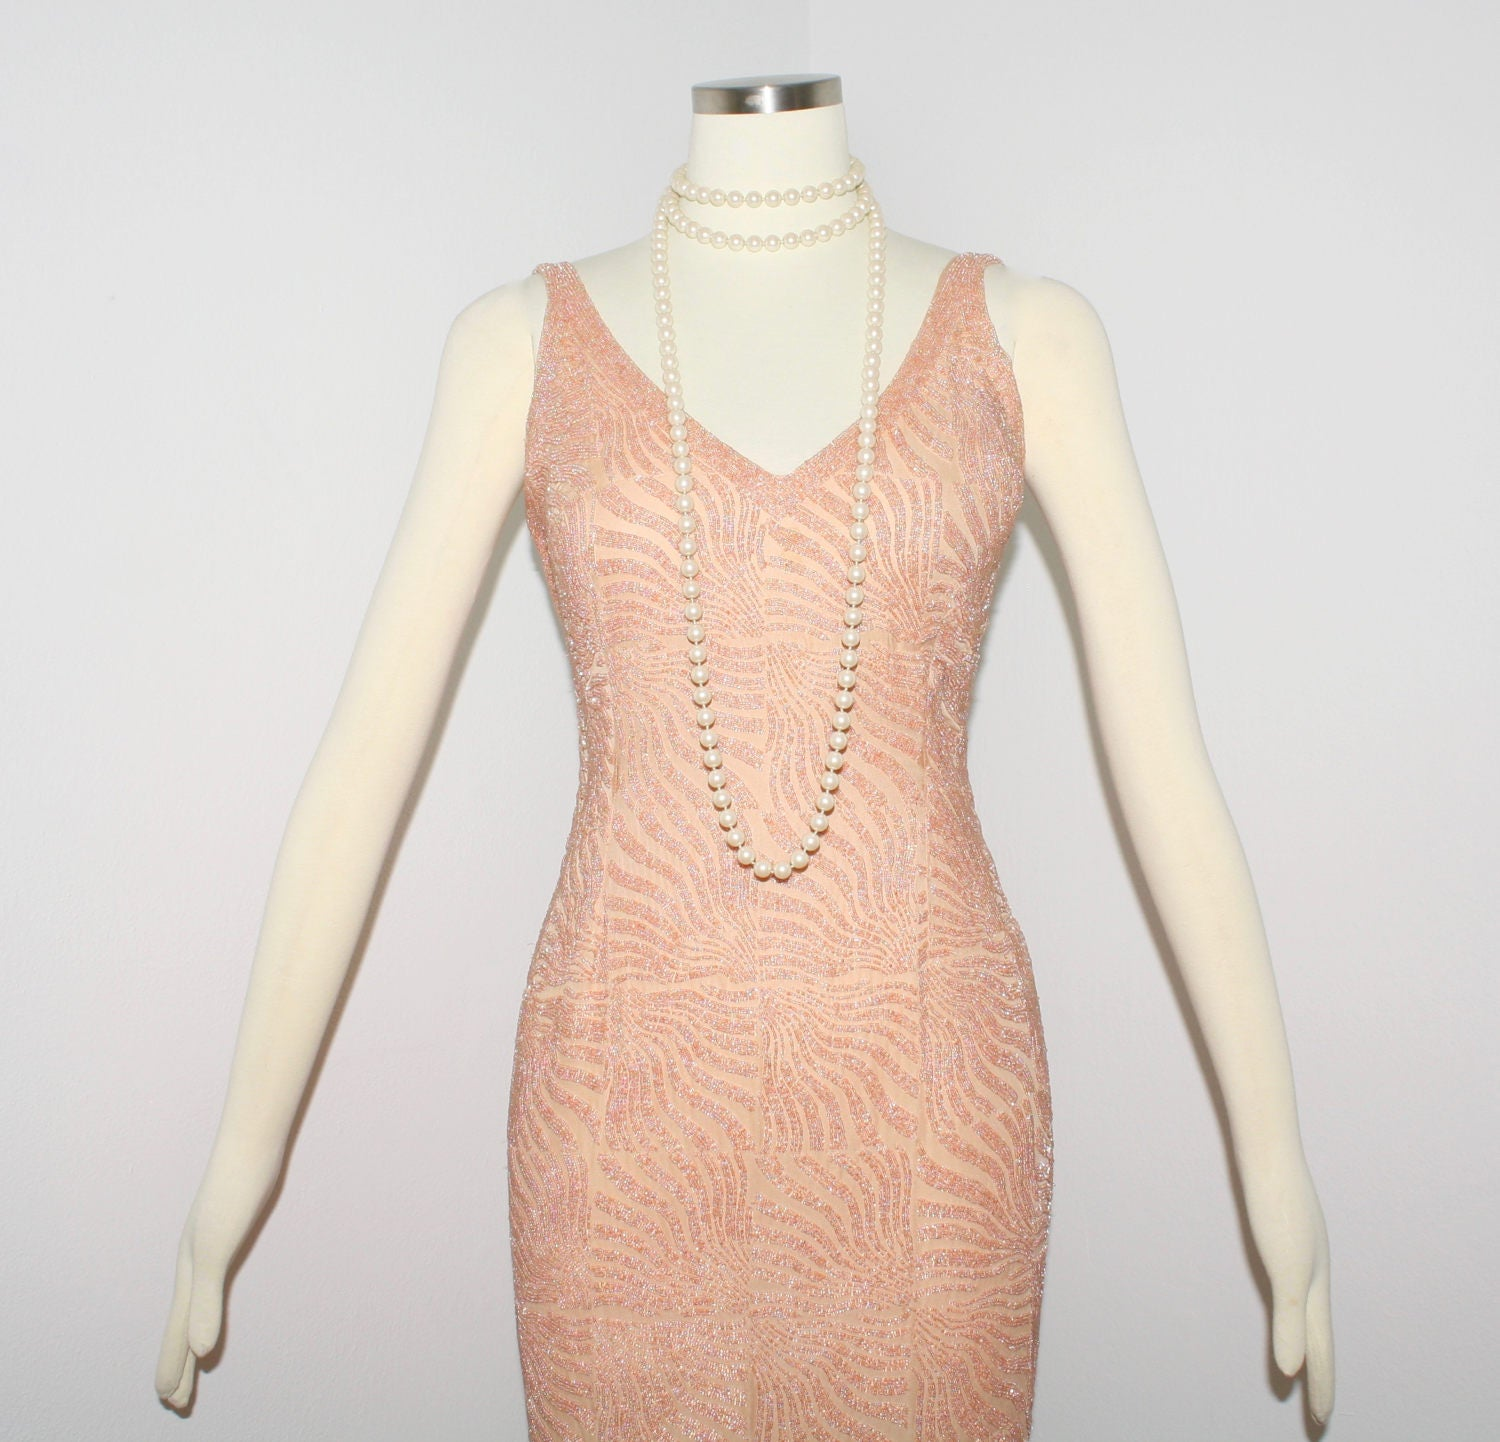 TODD OLDHAM Vintage Beaded Halter Pink Dress Mini